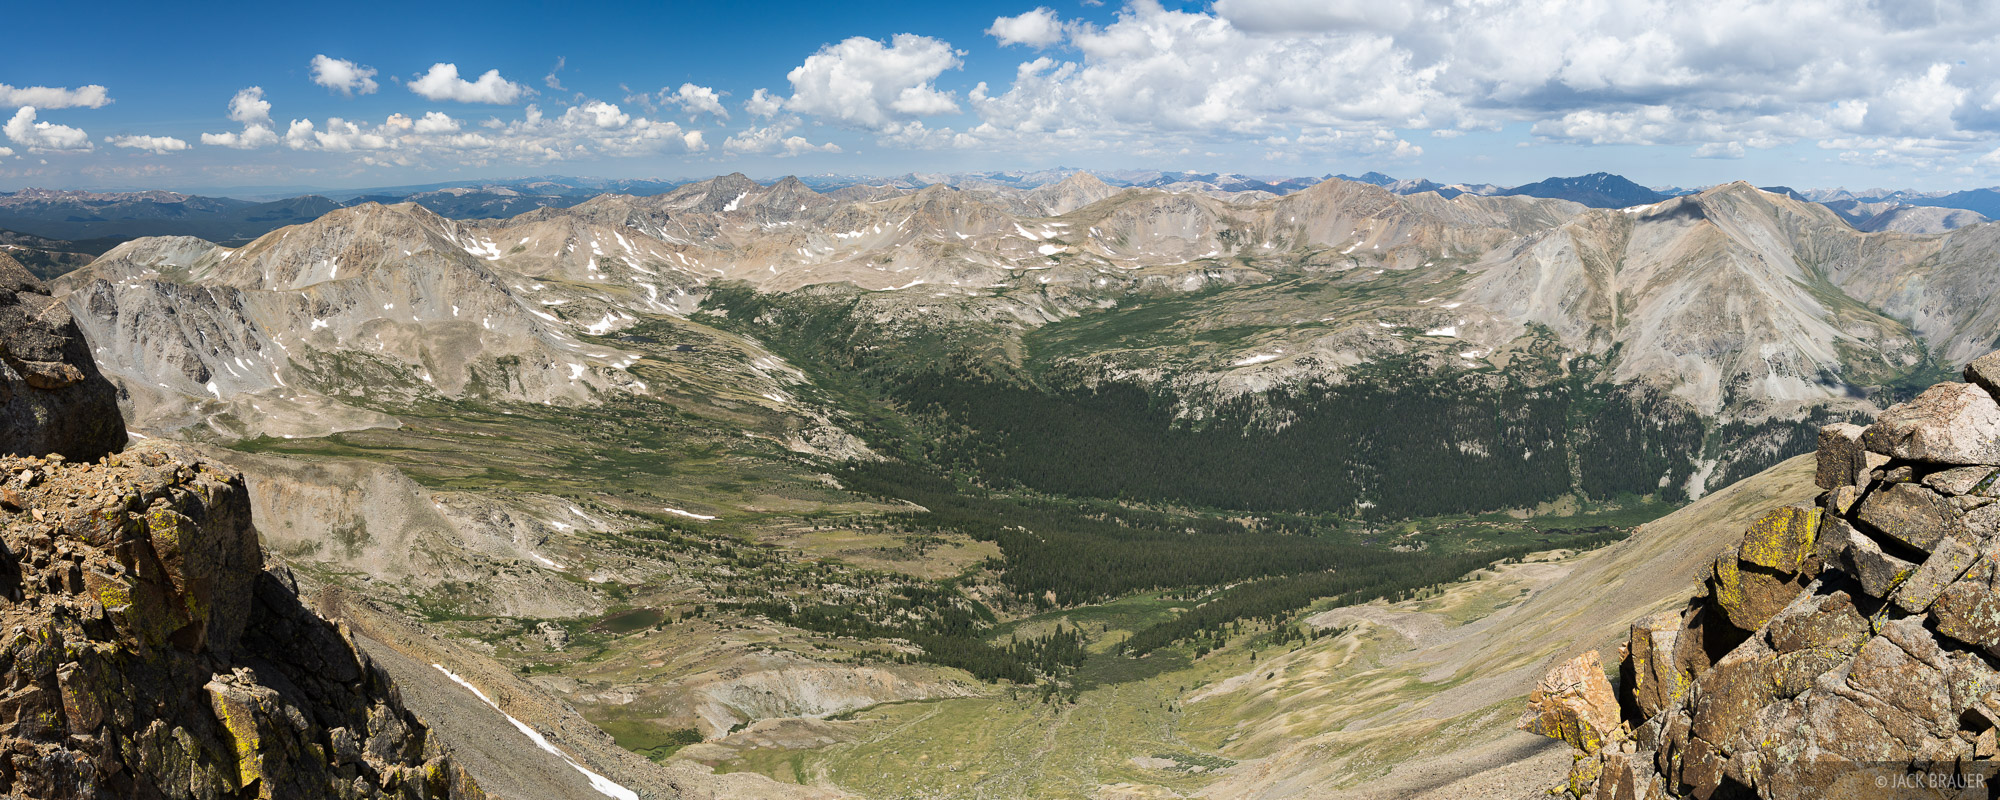 Collegiate Peaks Wilderness, Colorado, Missouri Basin, Mount Harvard, Sawatch Range, photo